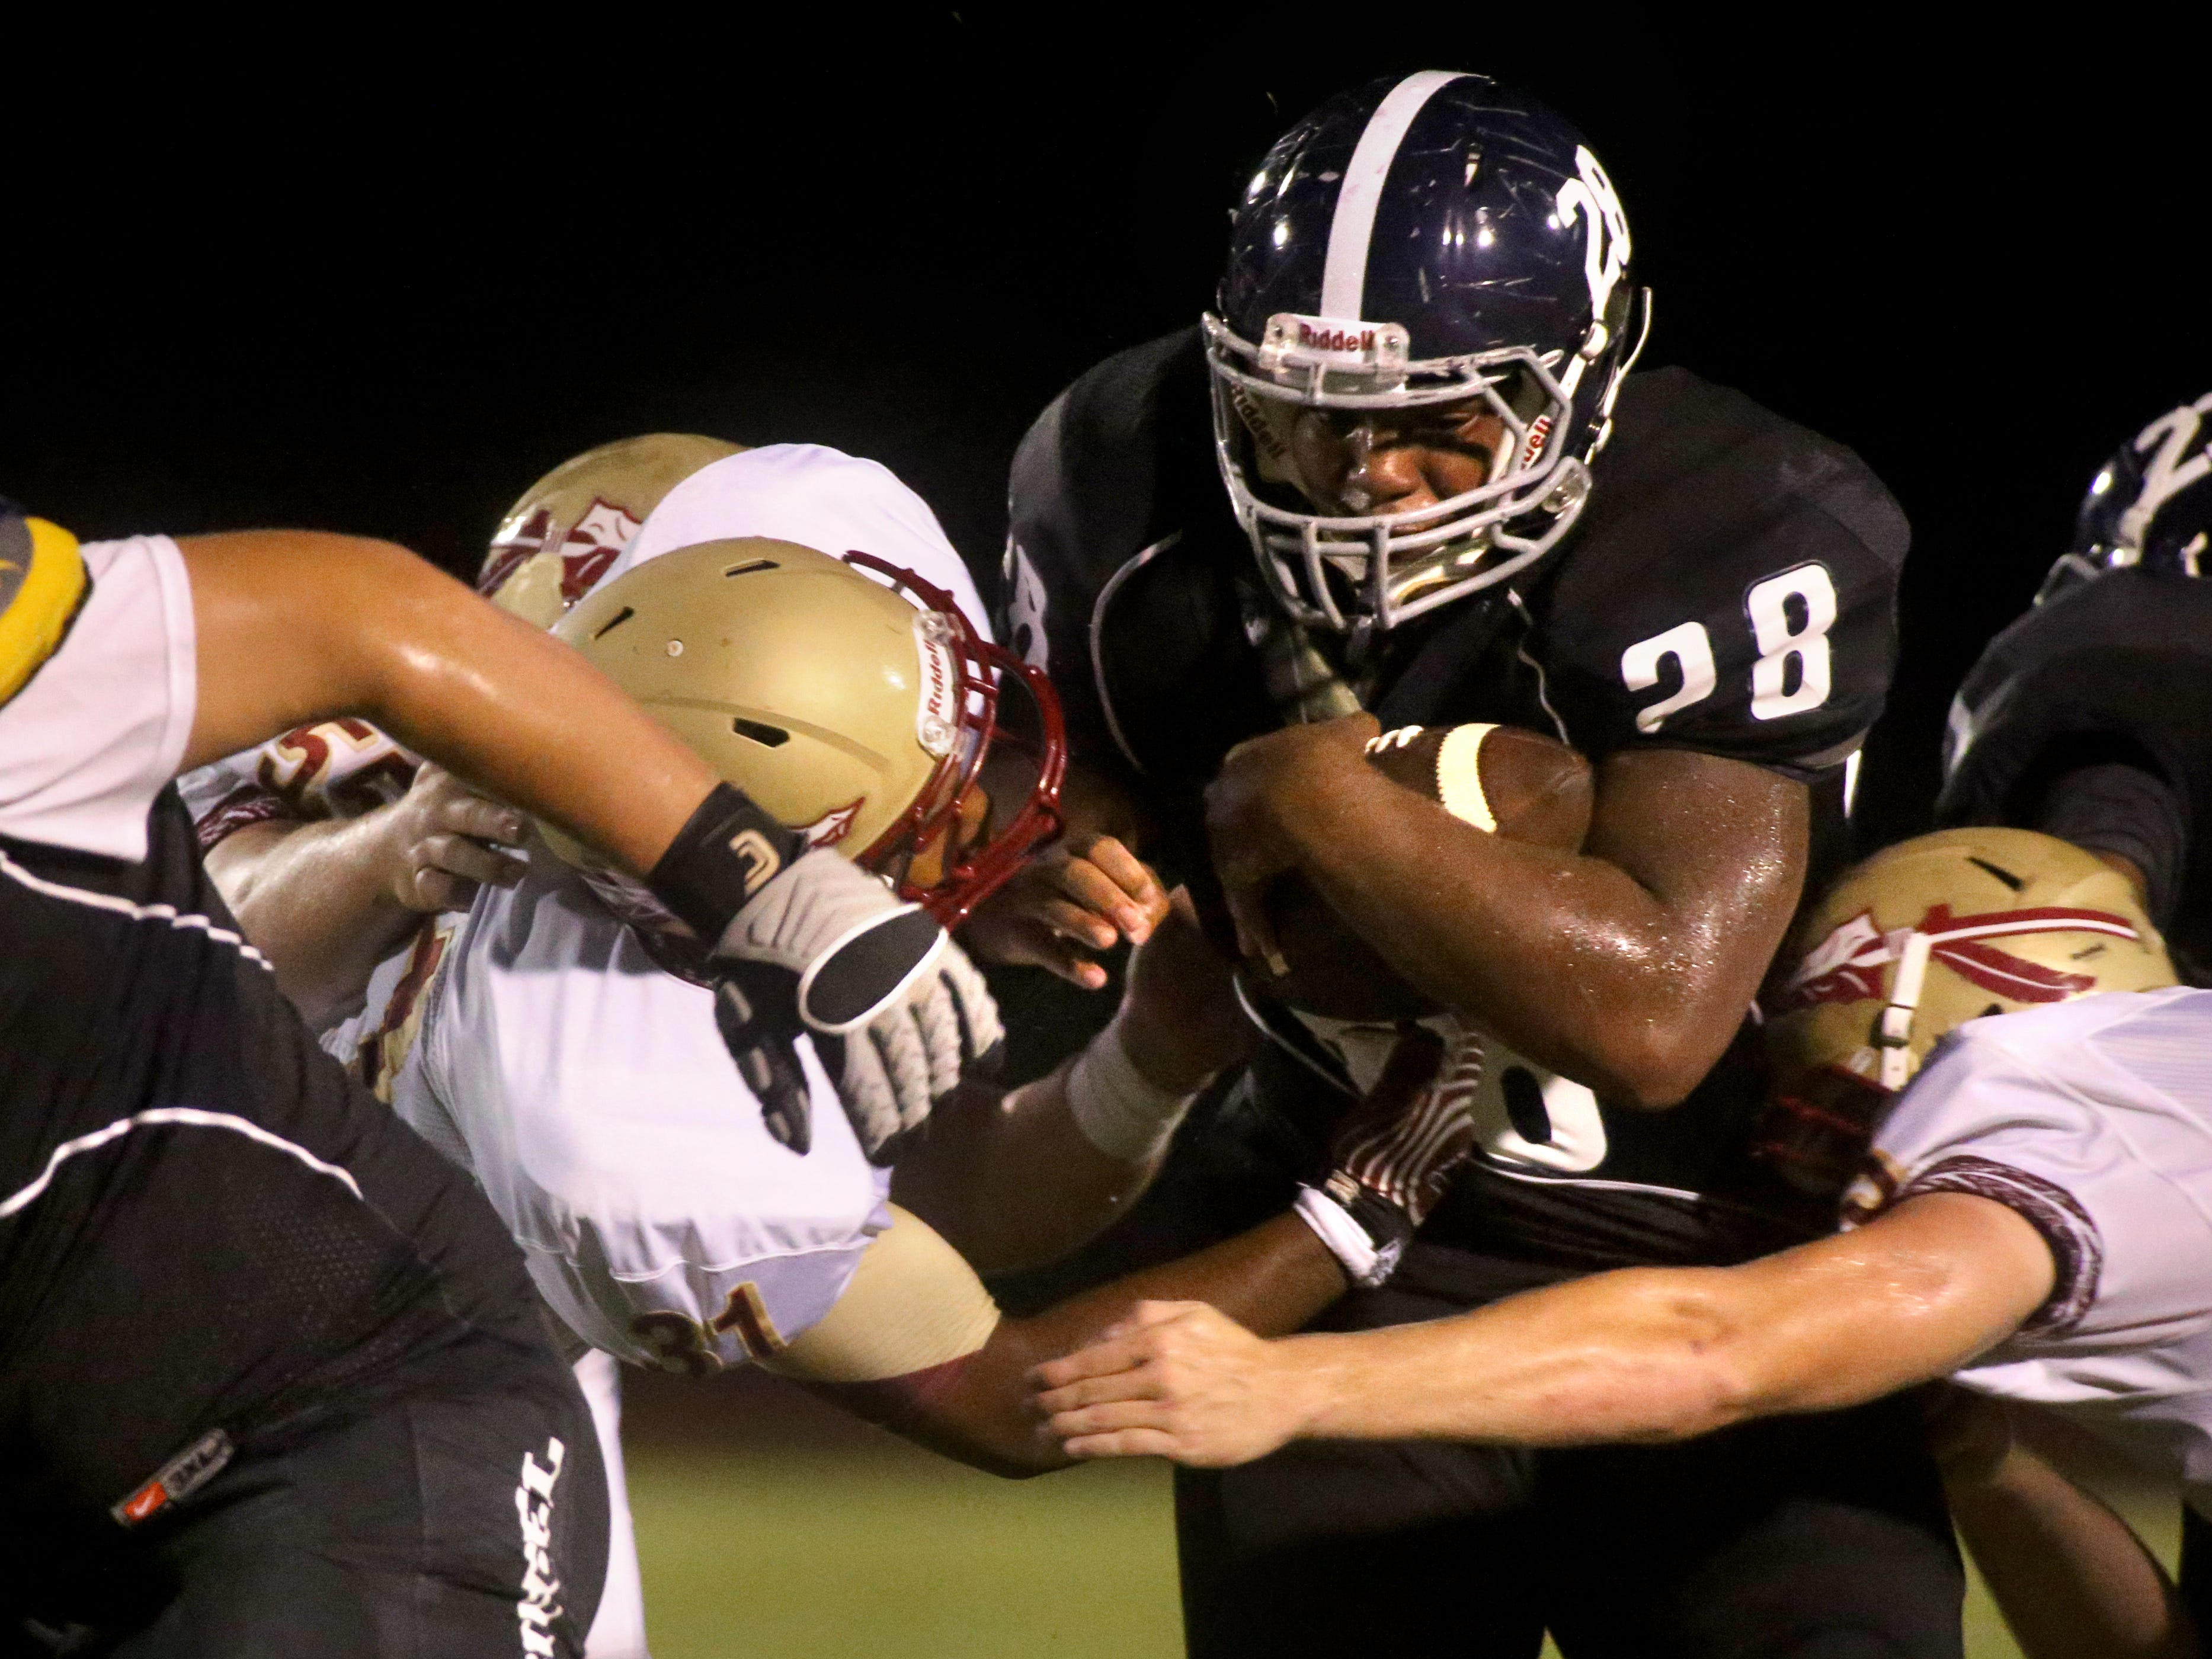 Siegel's Andrew Knox runs the ball against Riverdale during the week zero game at Siegel, on Friday, August 22, 2014.